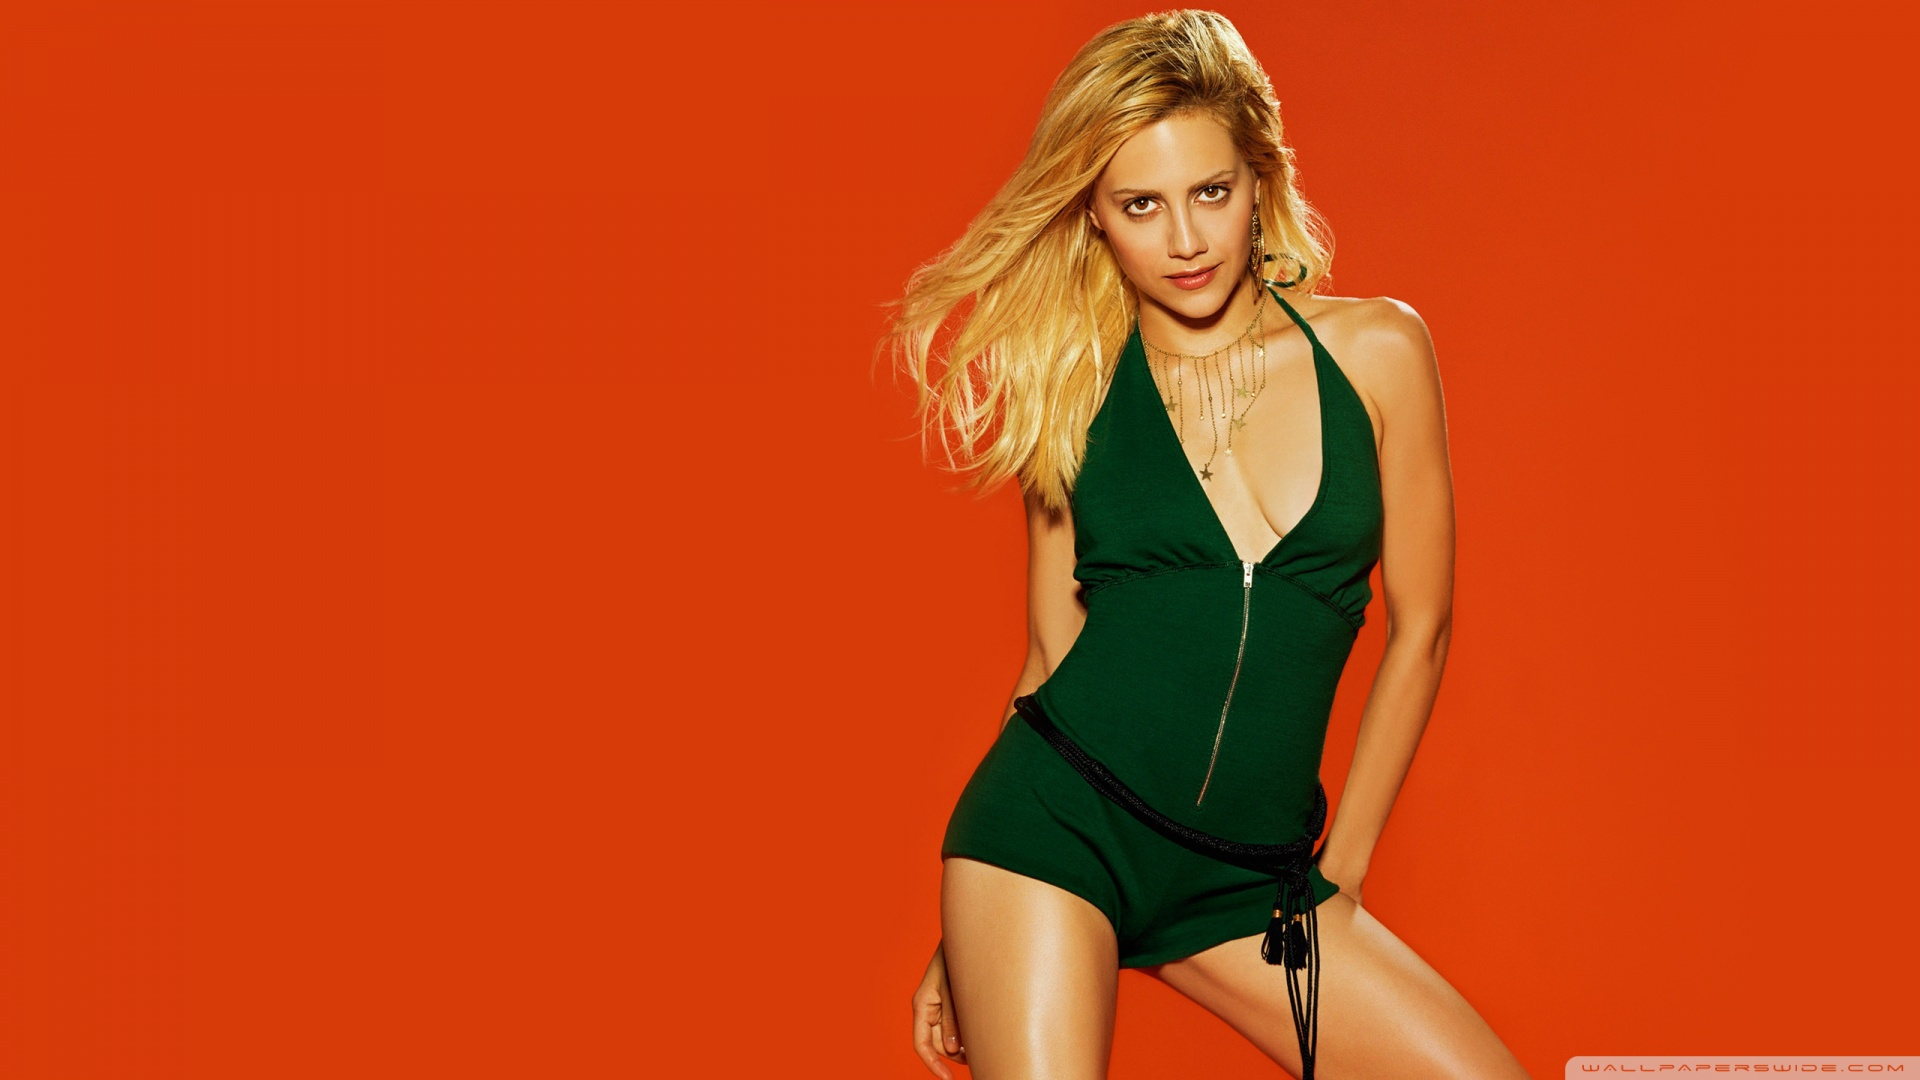 1920x1080 - Brittany Murphy Wallpapers 14